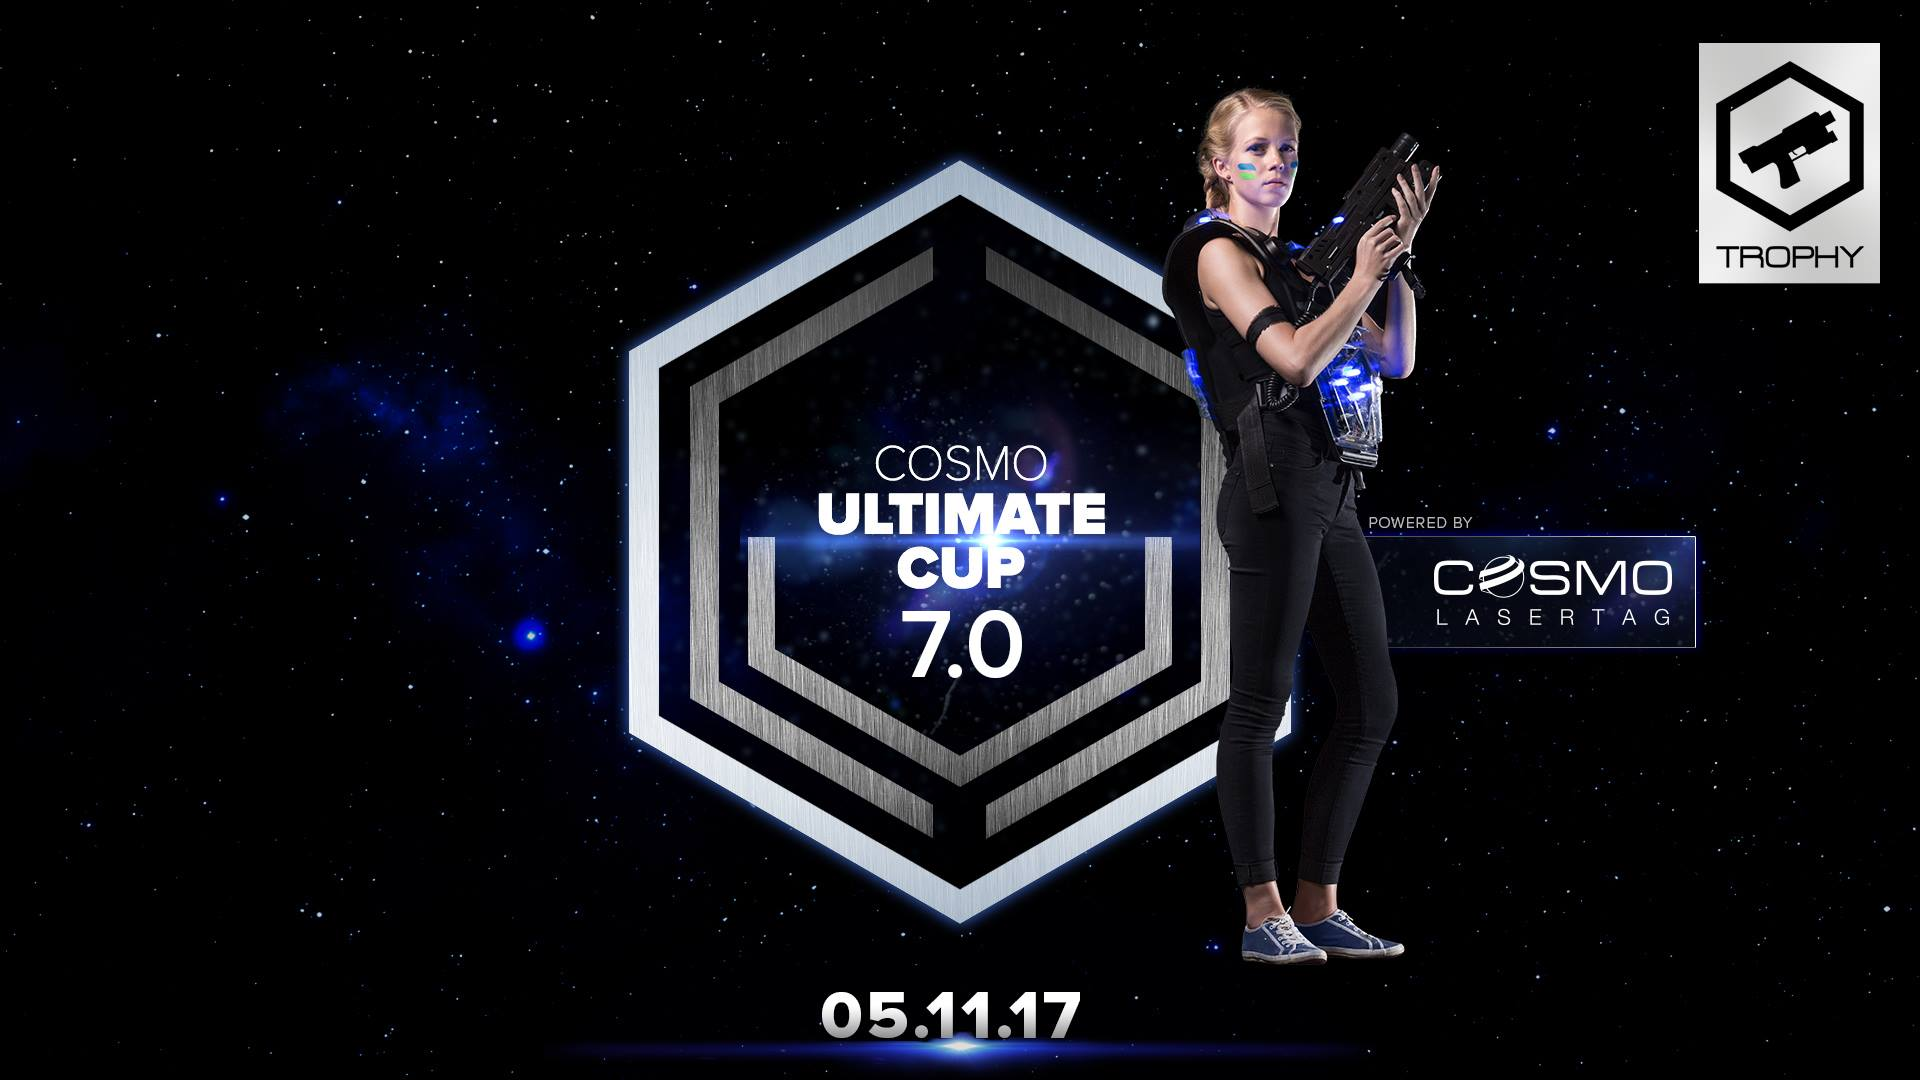 Cosmo Ultimate Cup 7.0